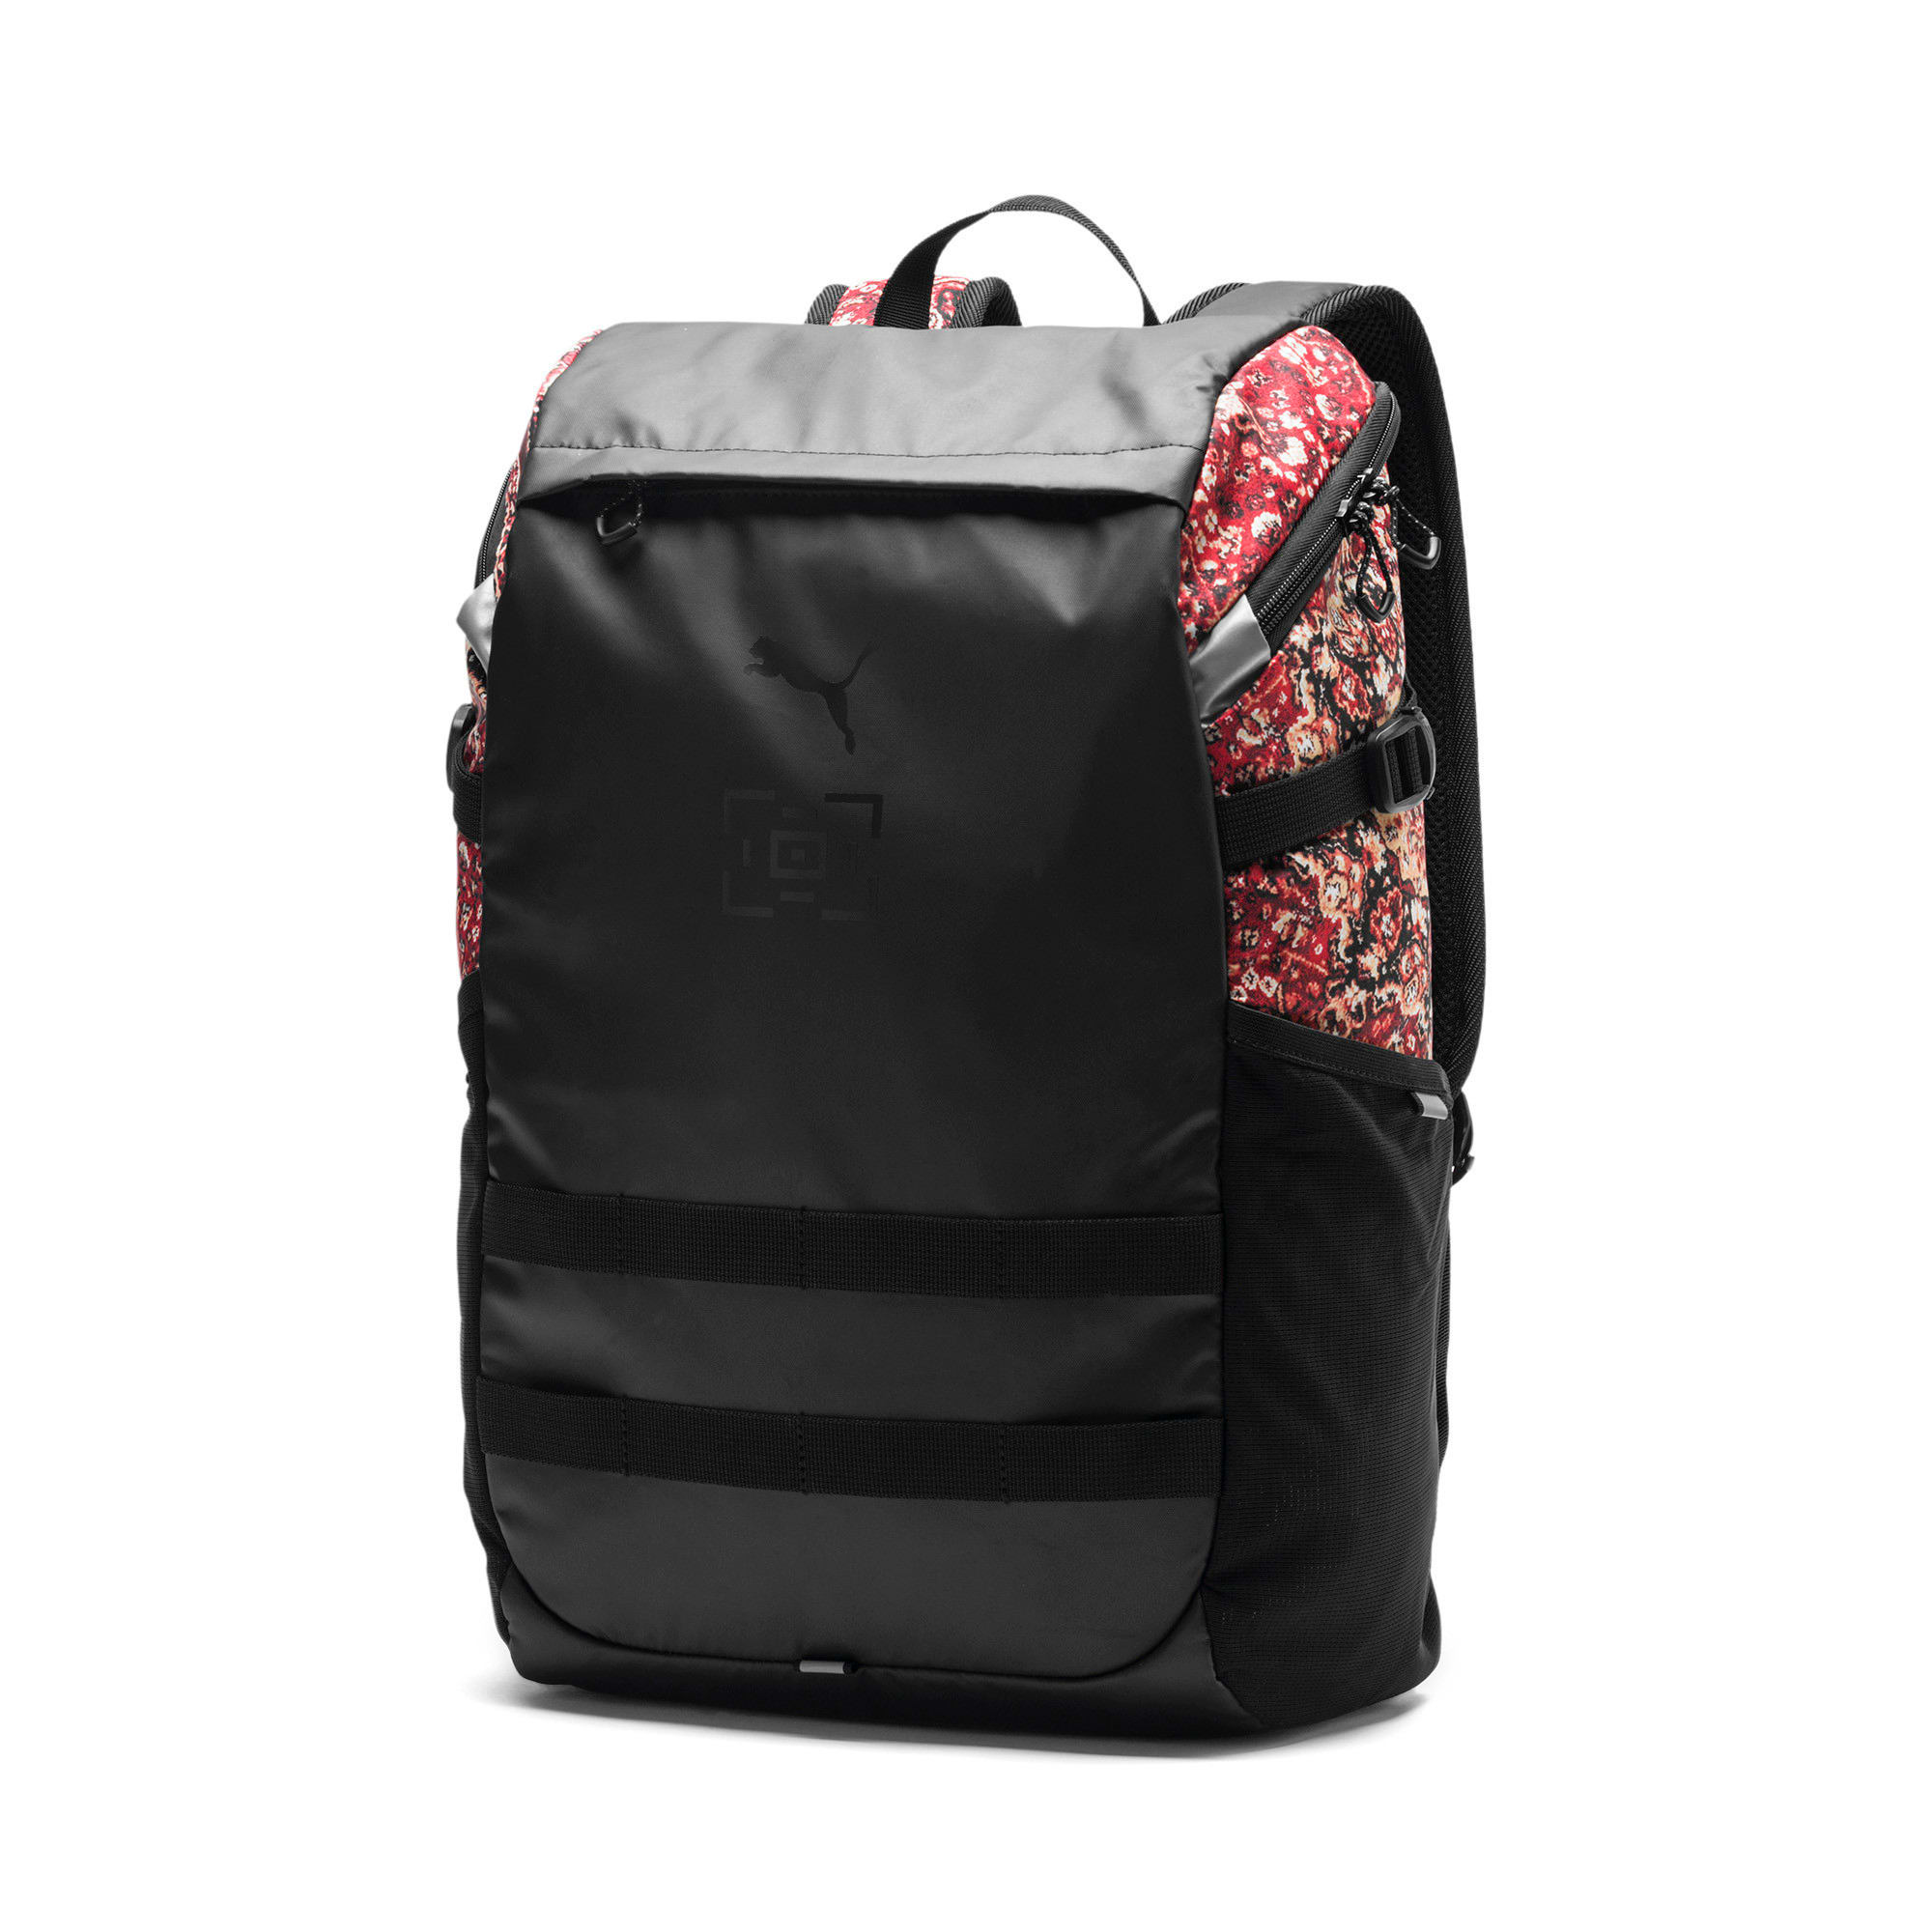 Thumbnail 1 of PUMA x LES BENJAMINS Backpack, Puma Black-AOP, medium